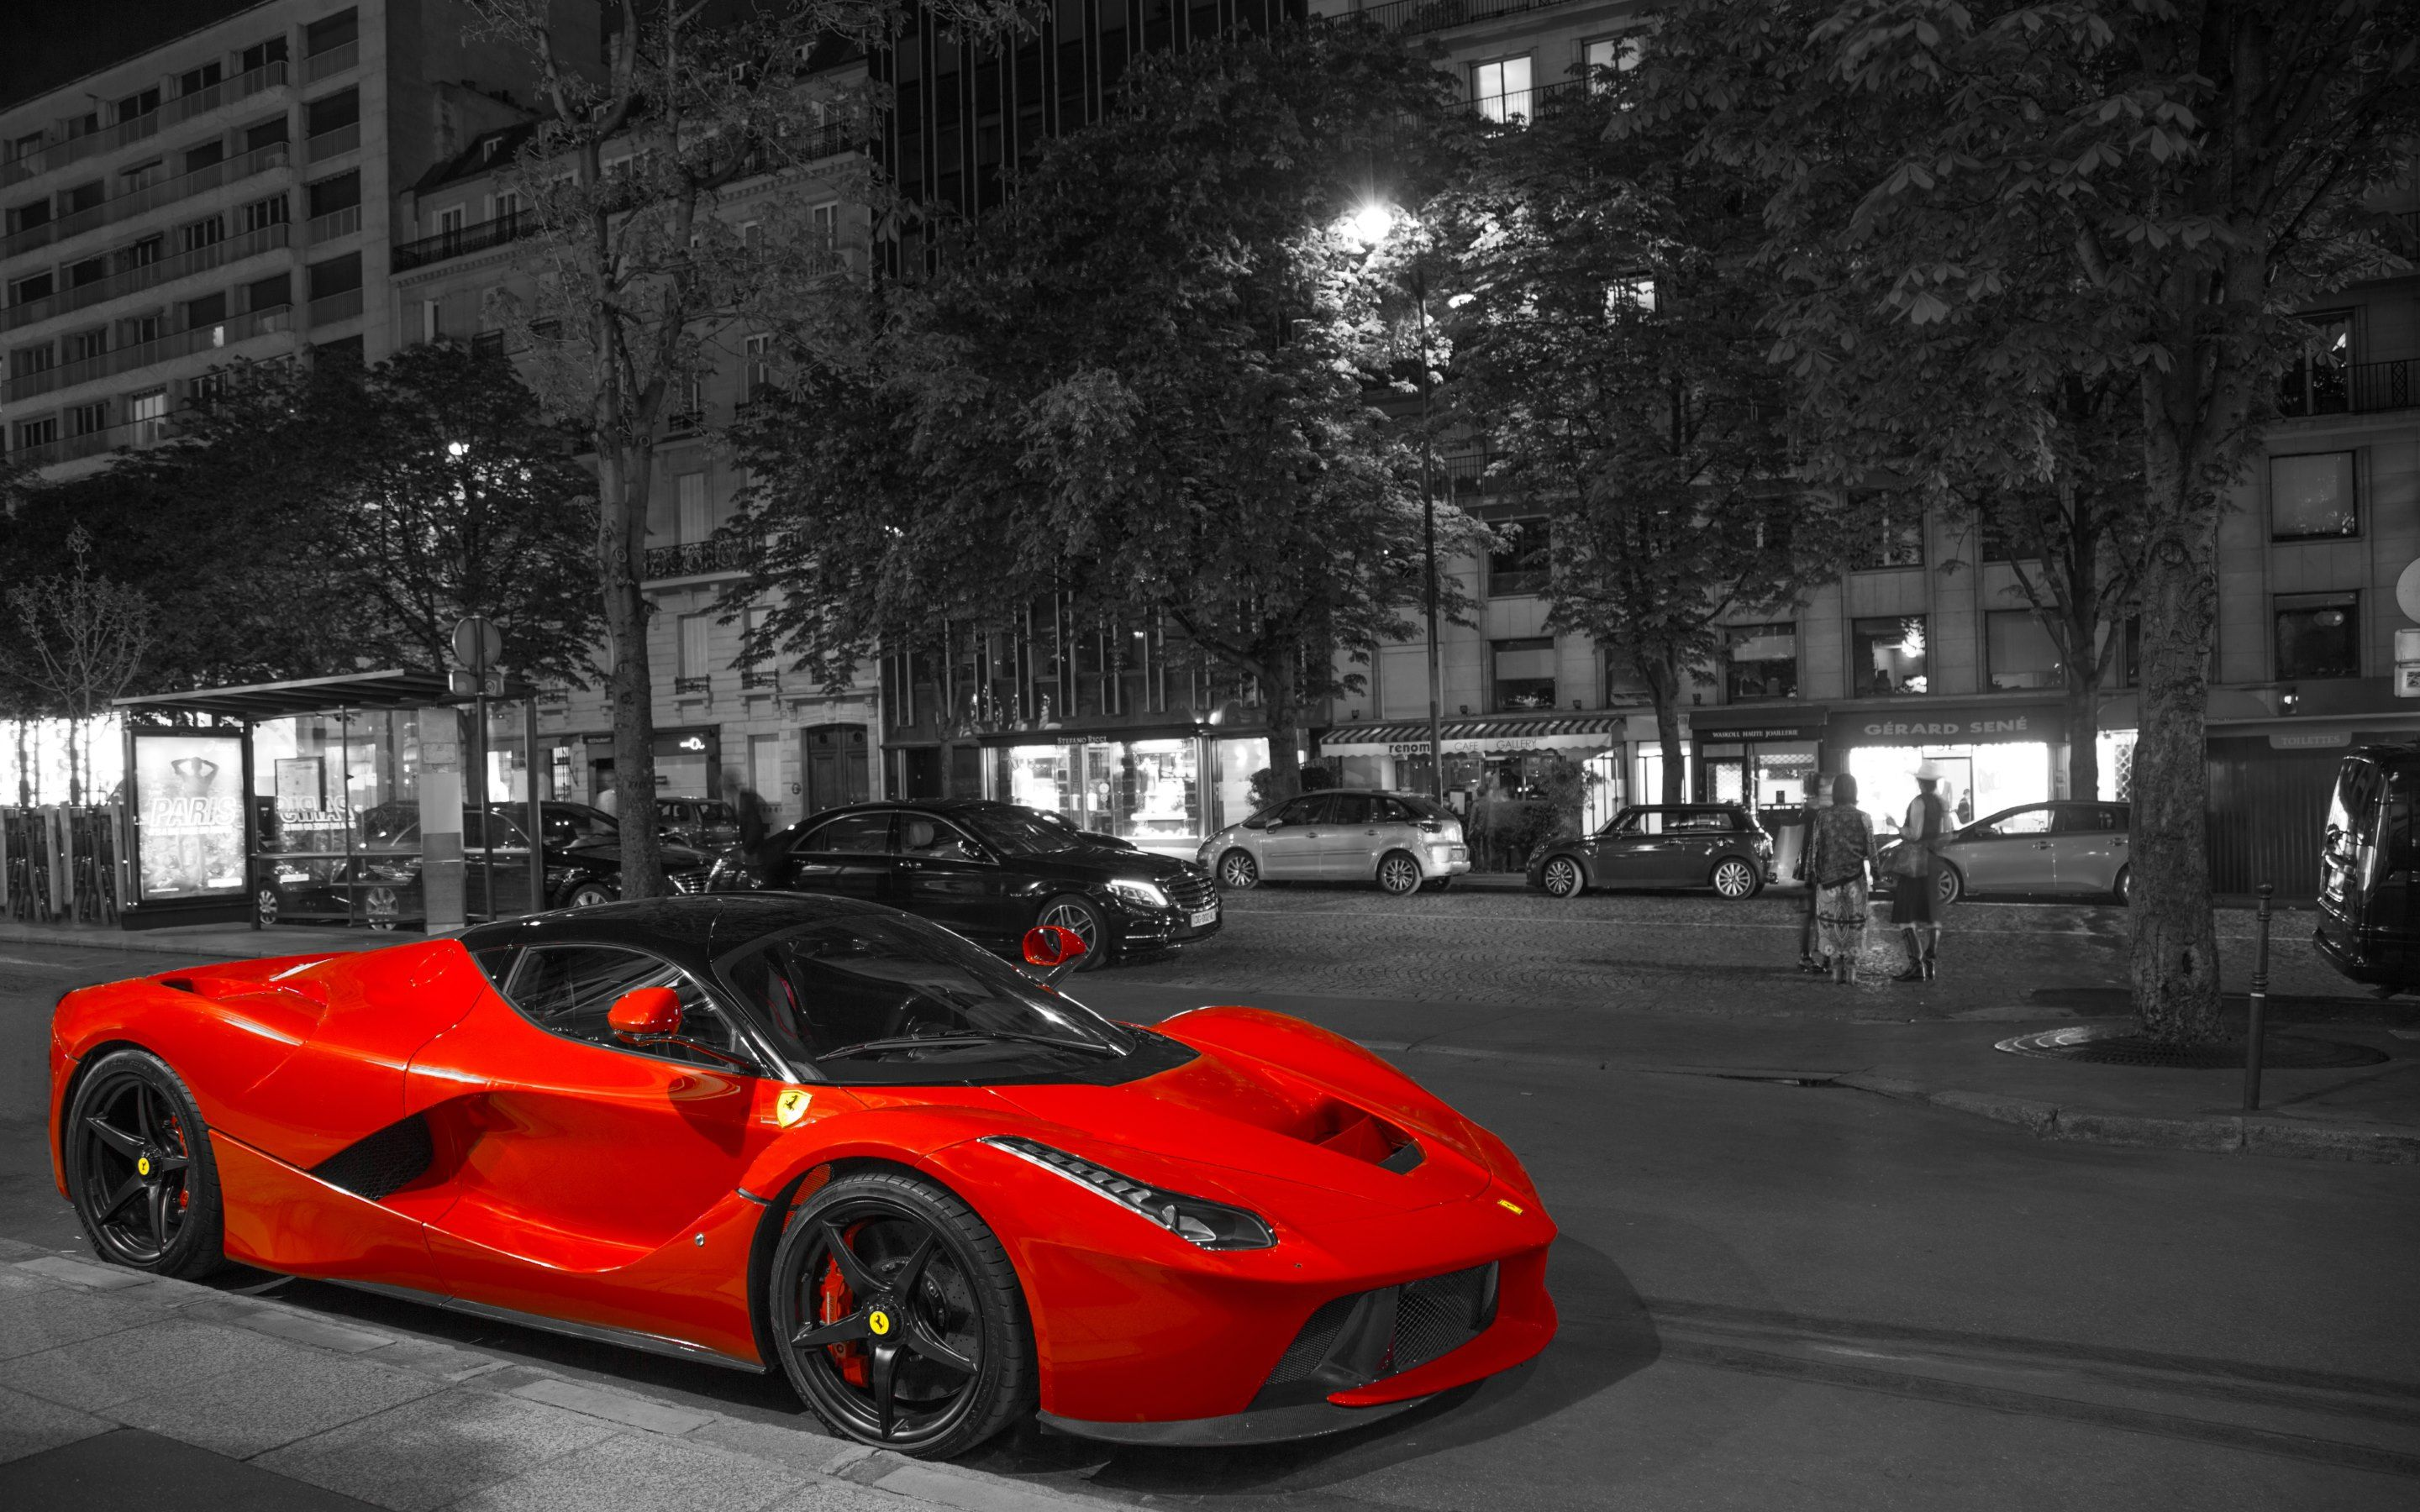 Laferrari Wallpaper For Iphone Xyc Cars Pinterest Ferrari